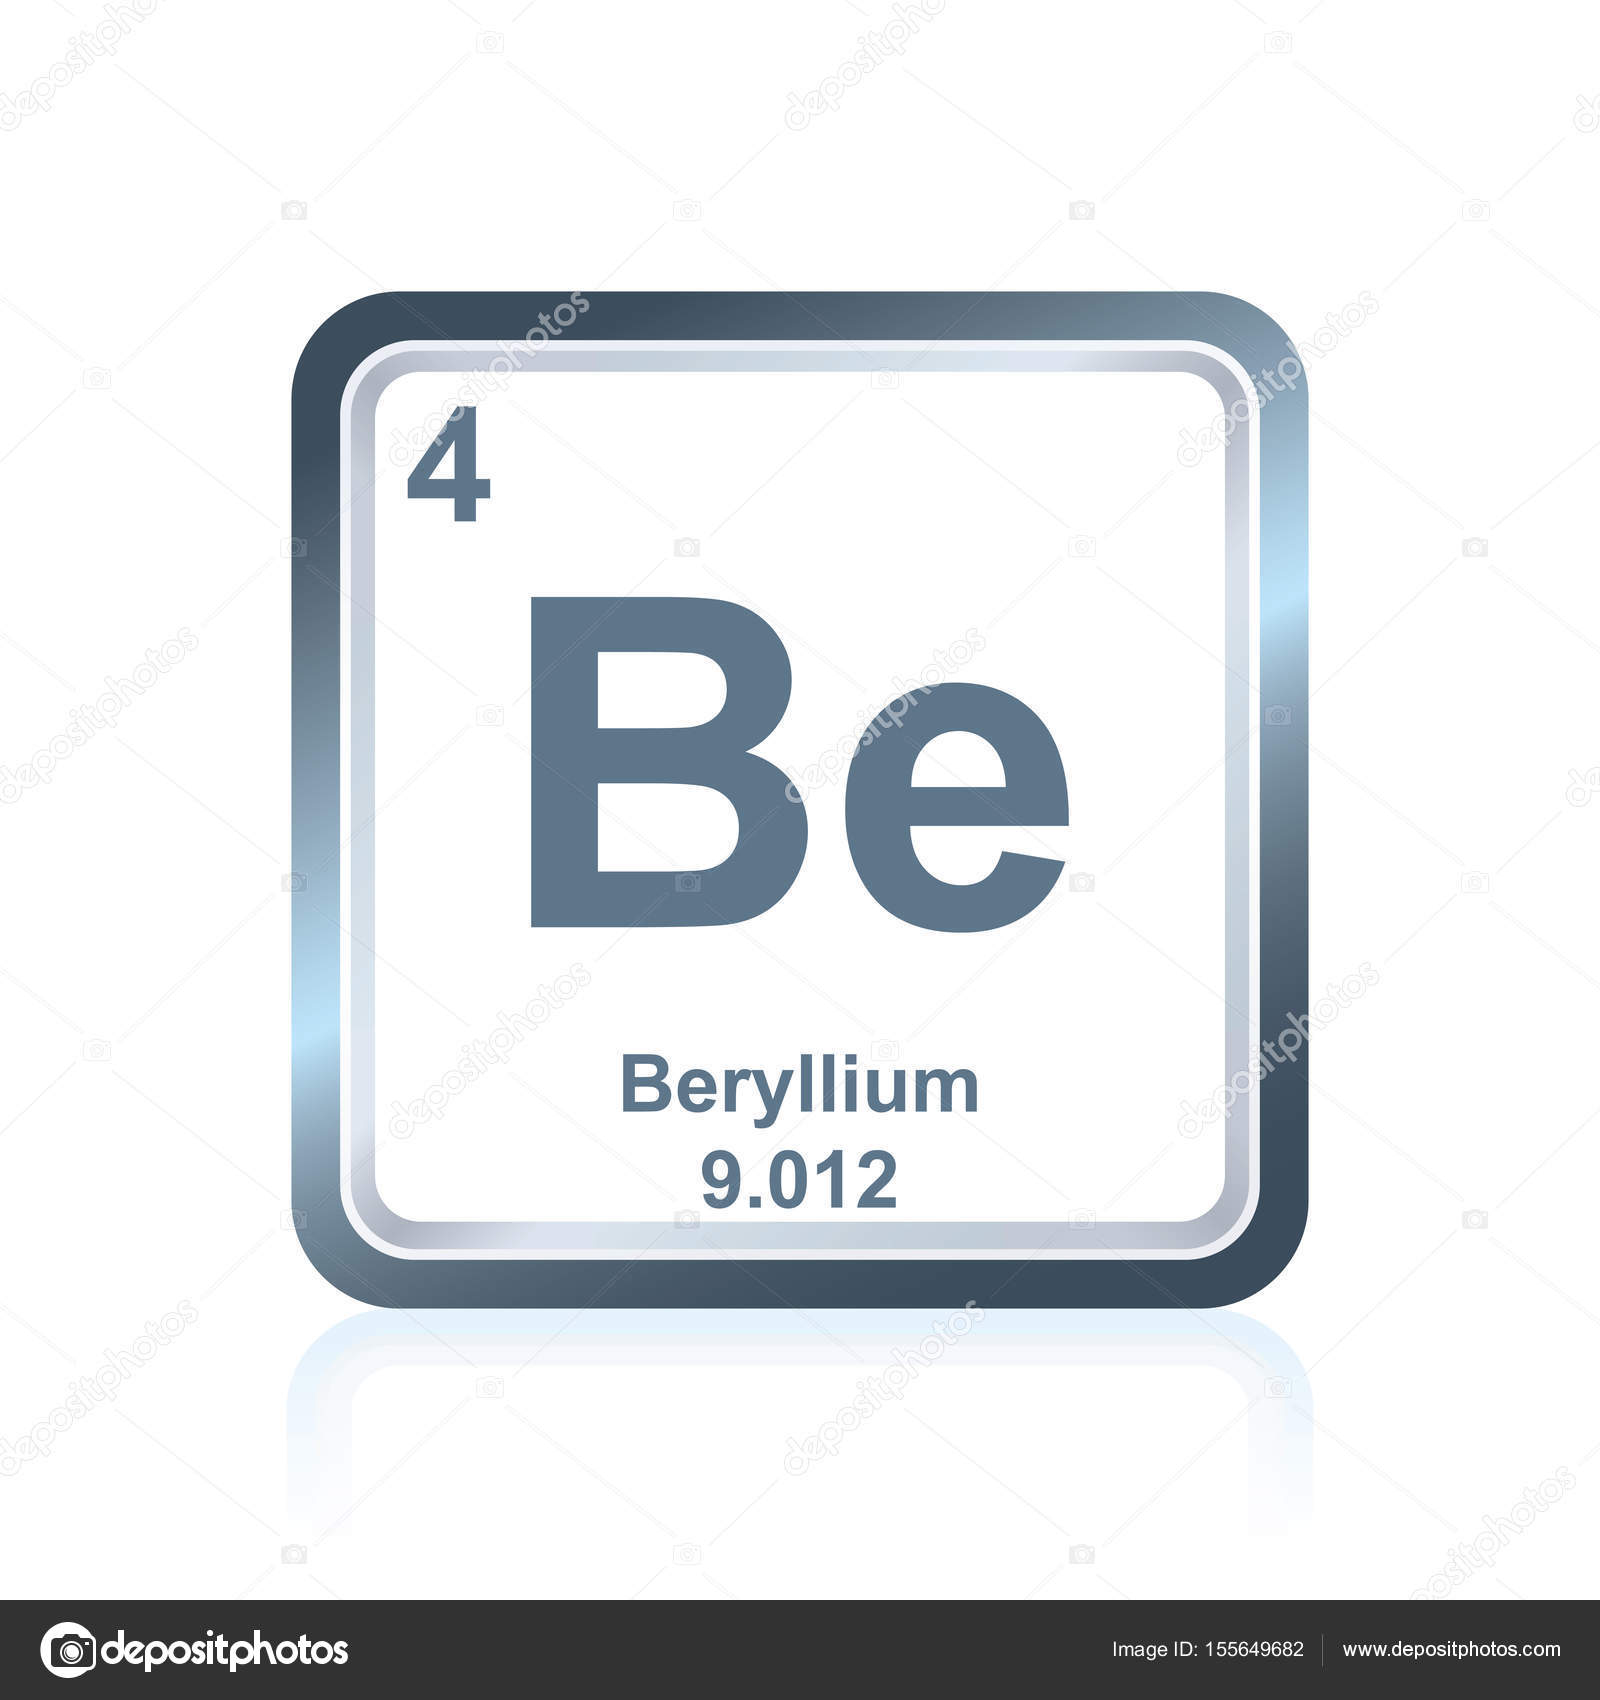 Chemical element beryllium from the periodic table stock vector symbol of chemical element beryllium as seen on the periodic table of the elements including atomic number and atomic weight vector by noedelhap urtaz Choice Image